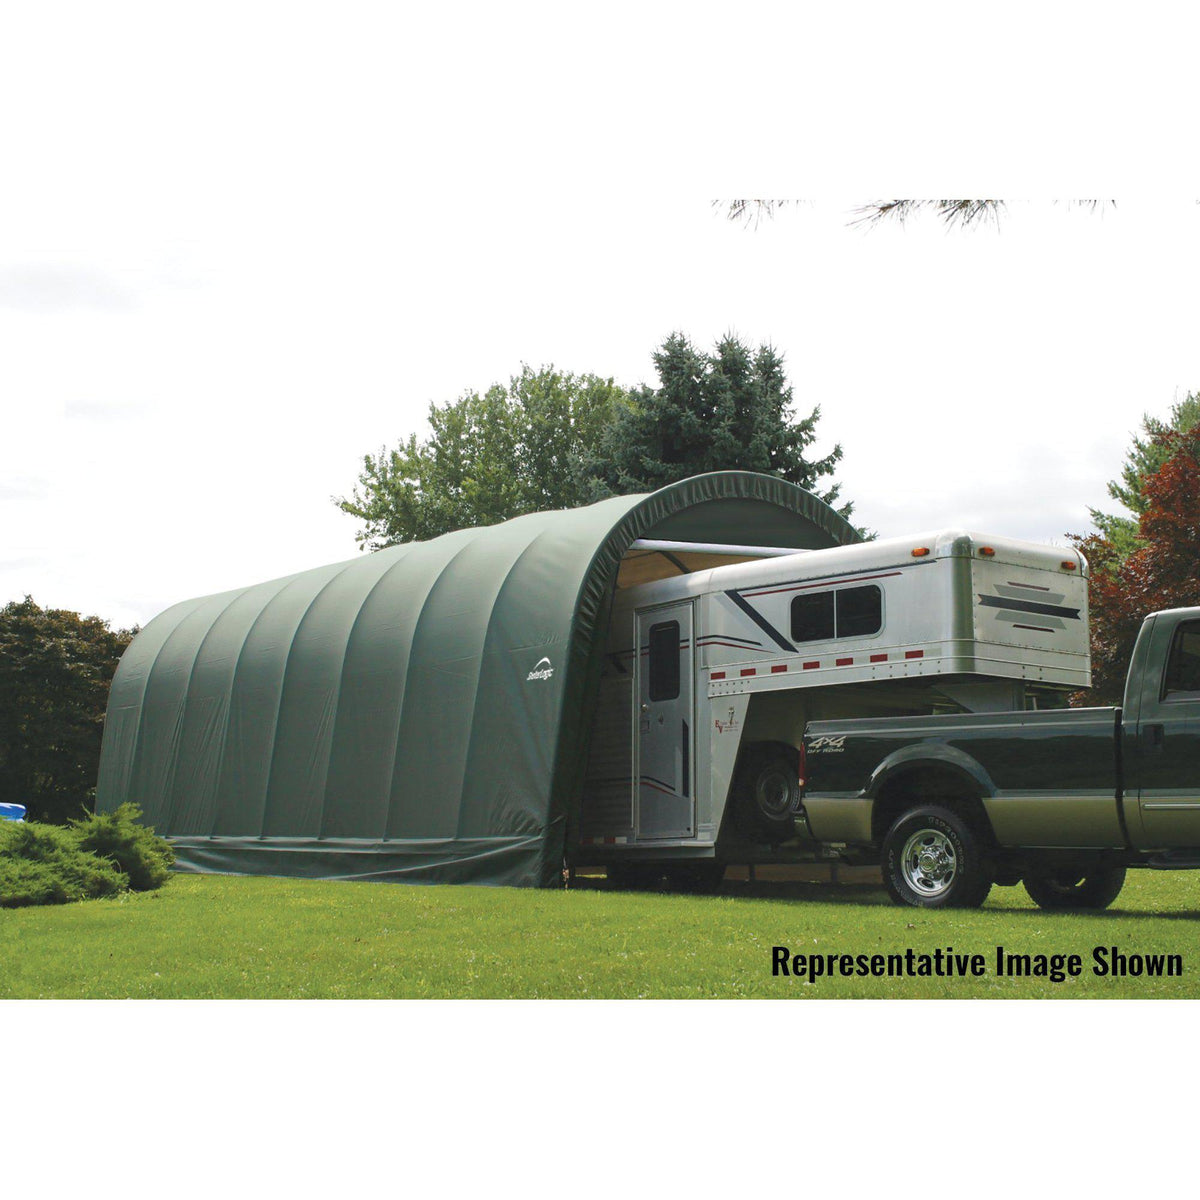 ShelterLogic Garage 15 x 24 x 12 Round Standard Green